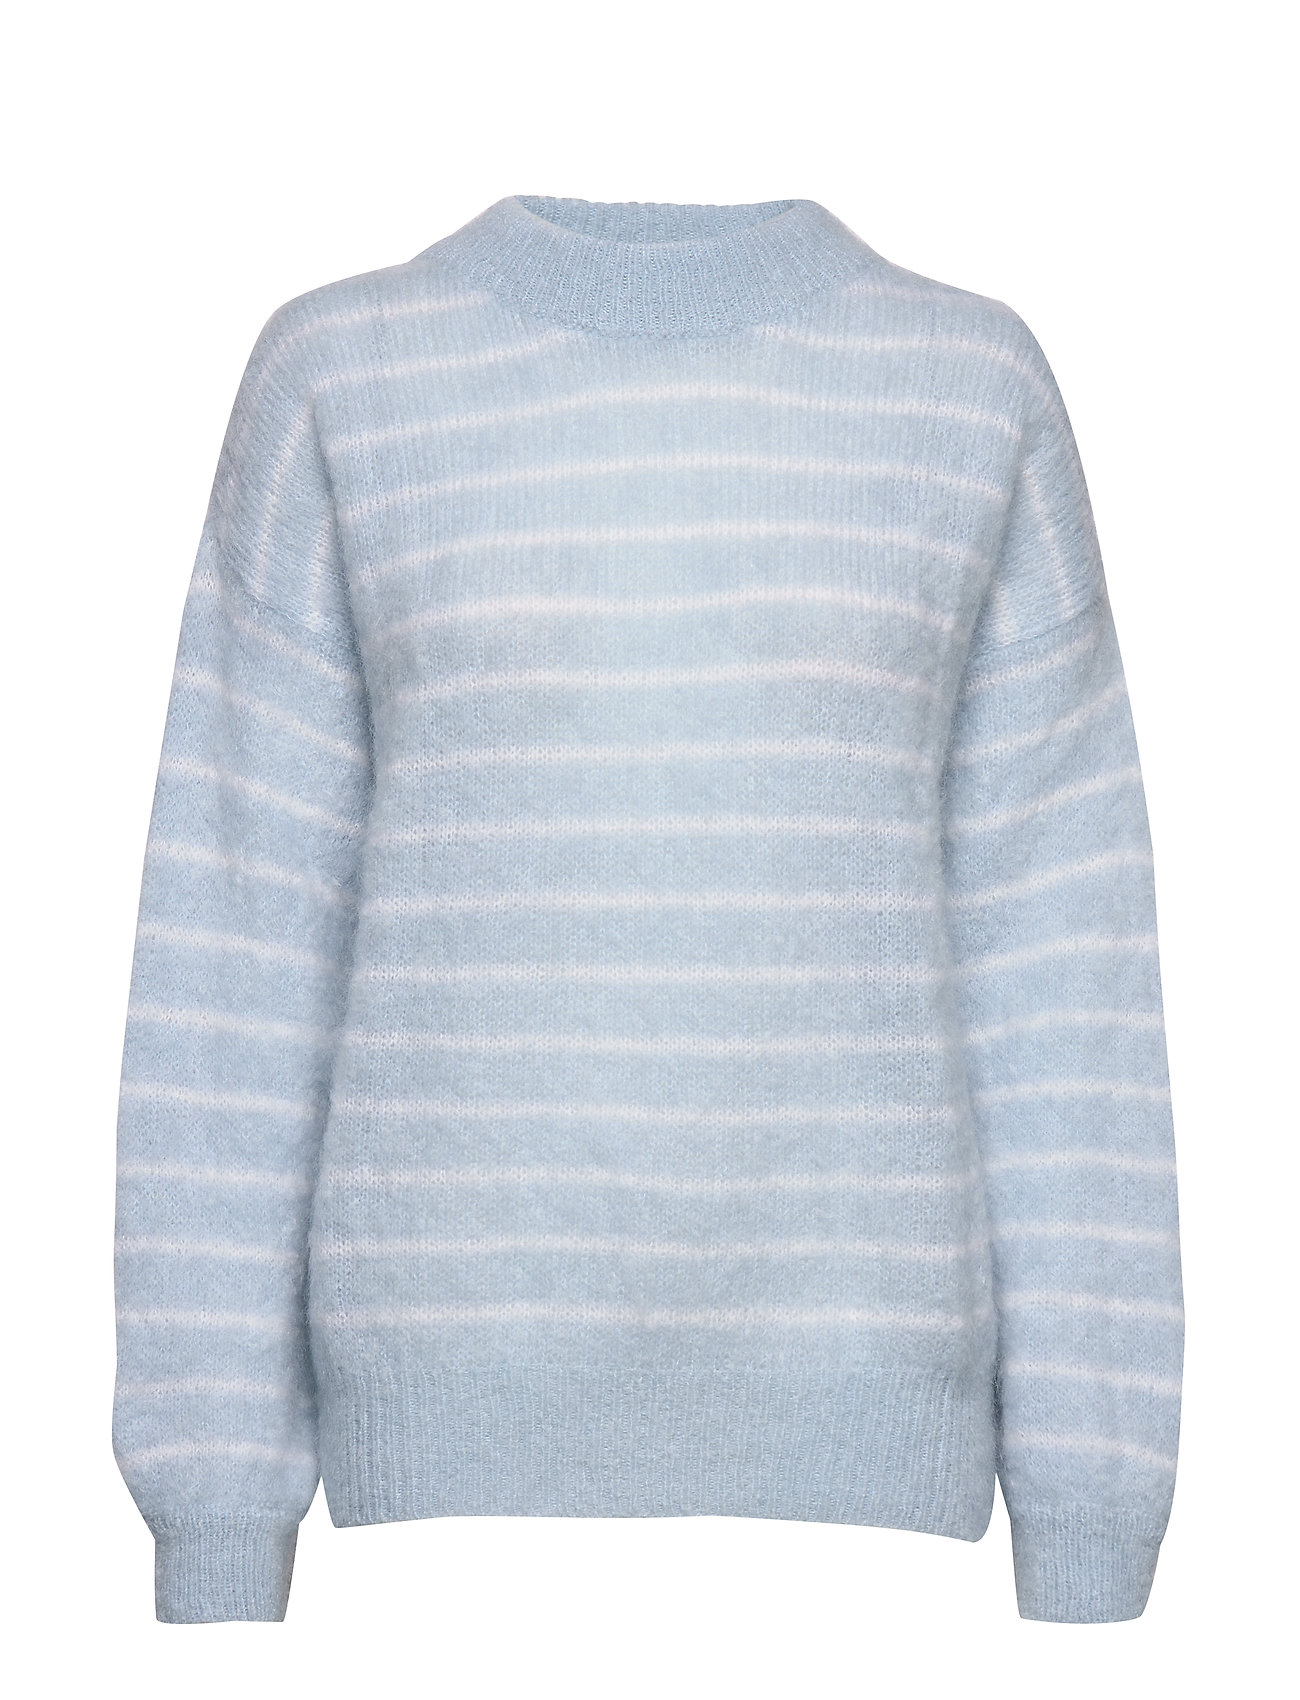 Image of Albert Sweater Awn Strikket Trøje Blå IBEN (3338944841)